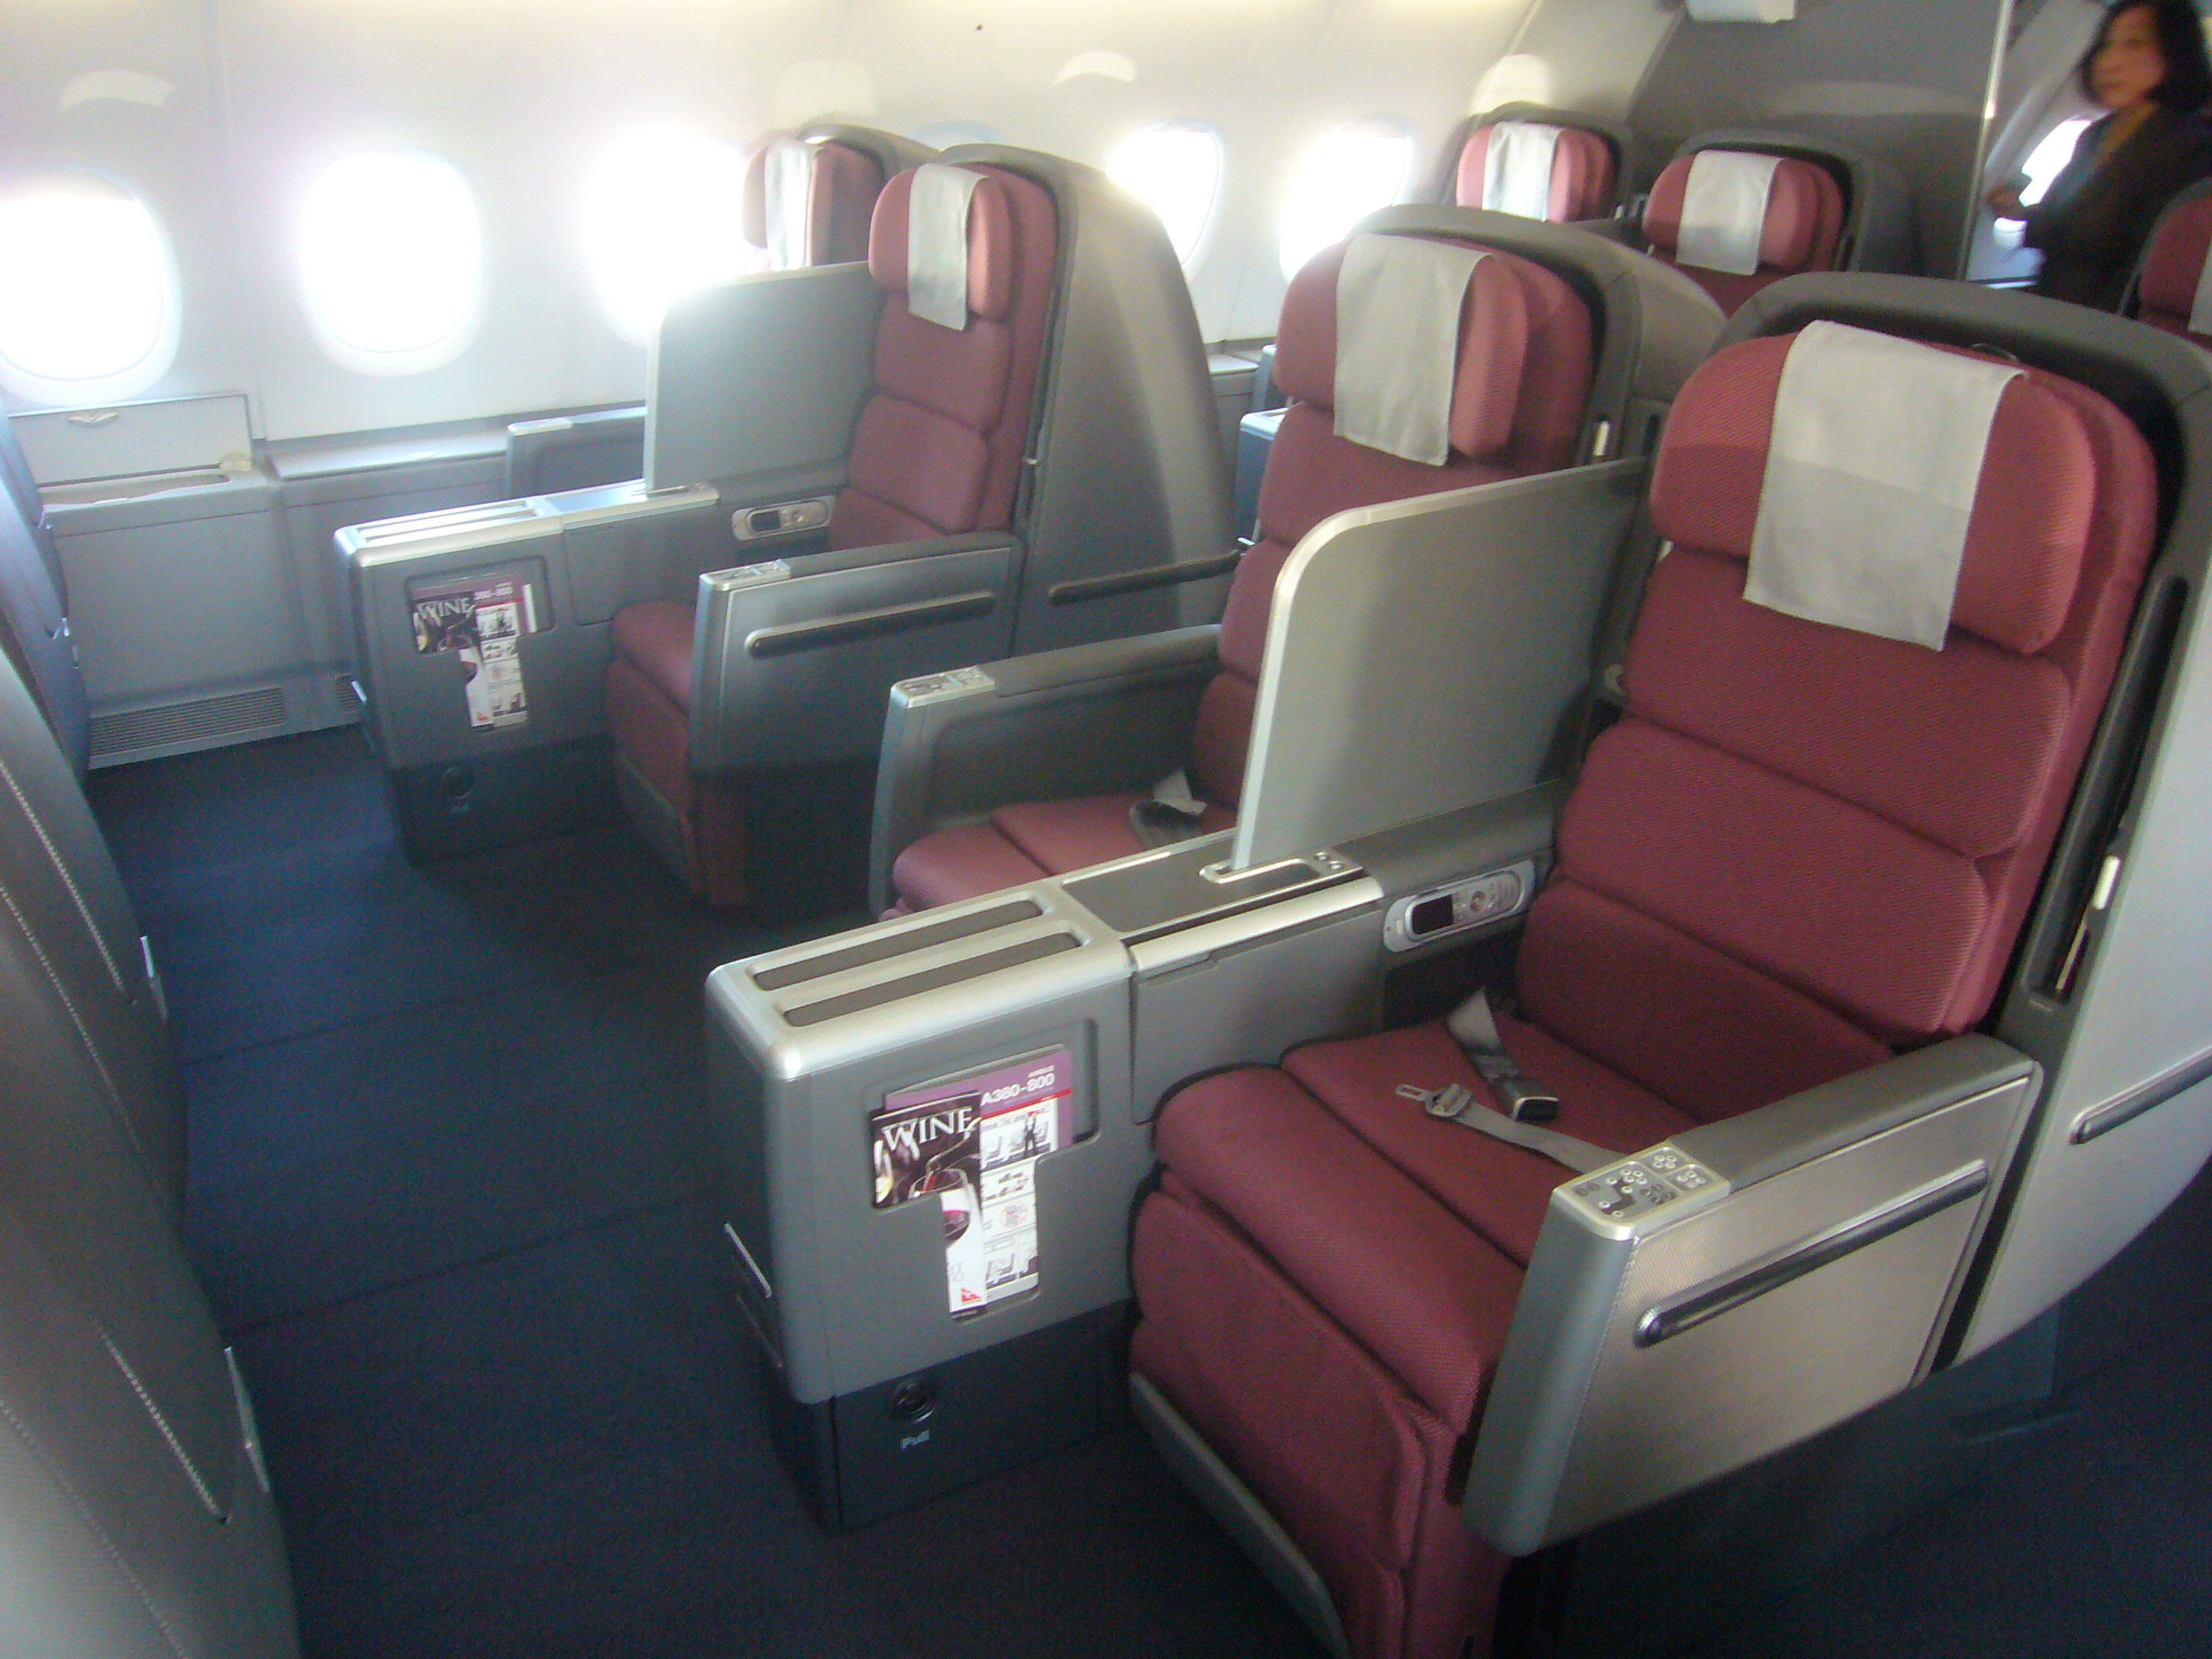 gallery qantas airbus a380 business class